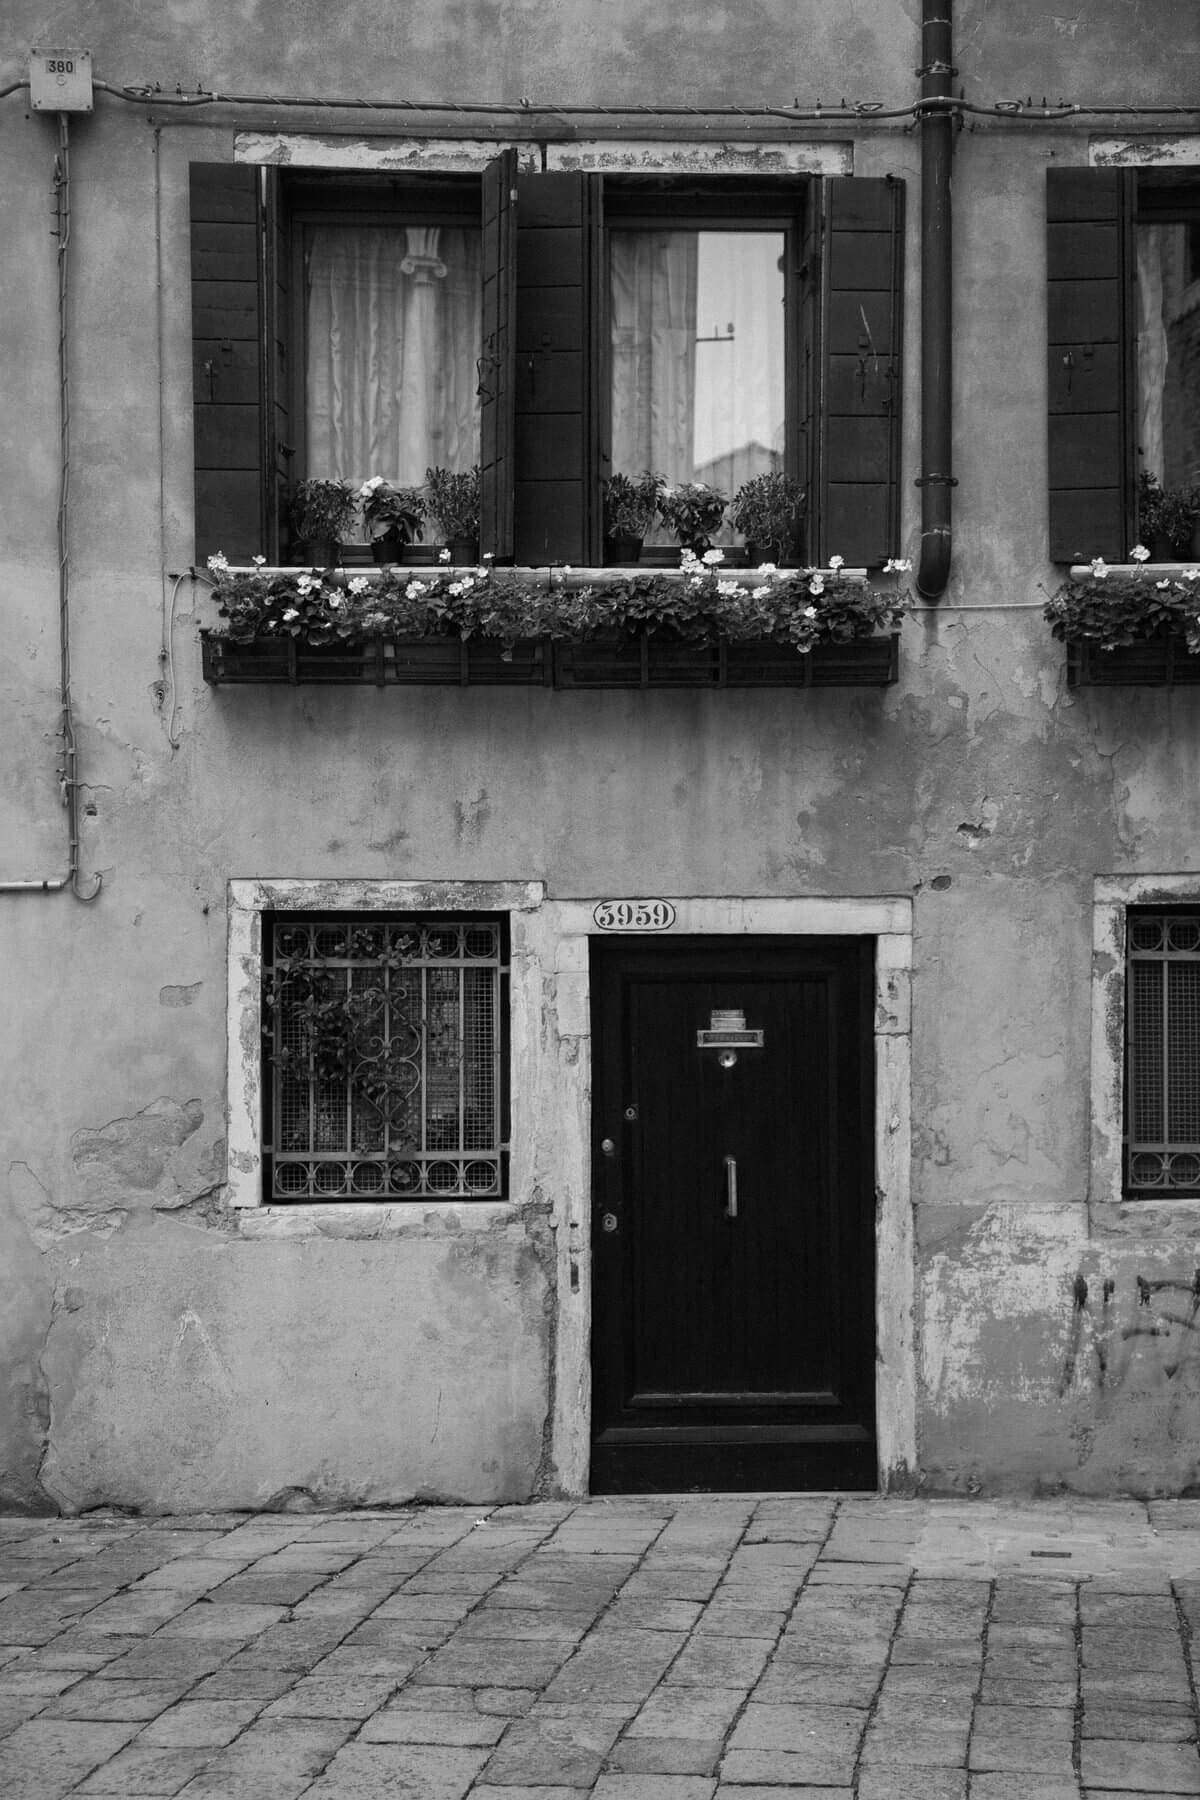 Venice-Italy-black-and-white-fine-art-photography-by-Studio-L-photographer-Laura-Schneider-_4099